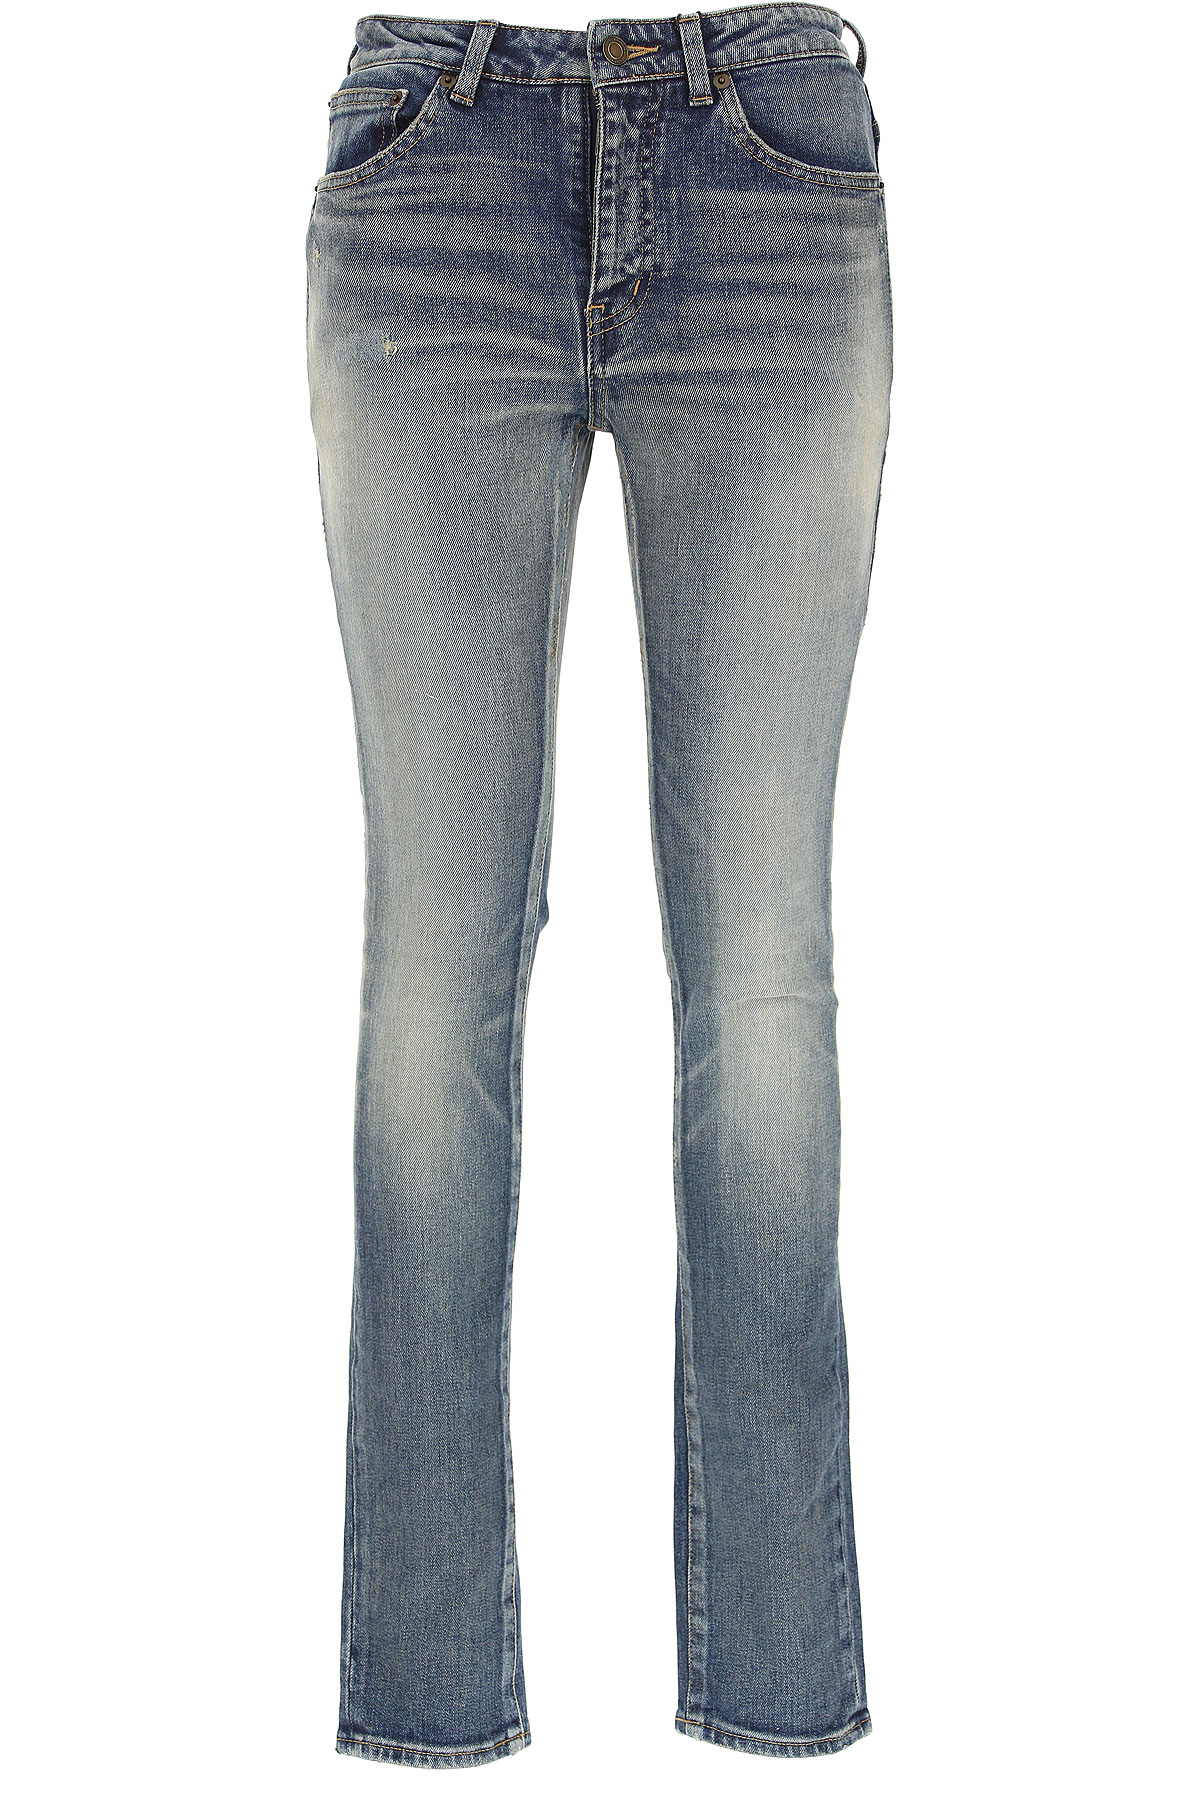 Yves Saint Laurent Jeans On Sale, Denim Blue, Cotton, 2017, 25 26 27 28 29